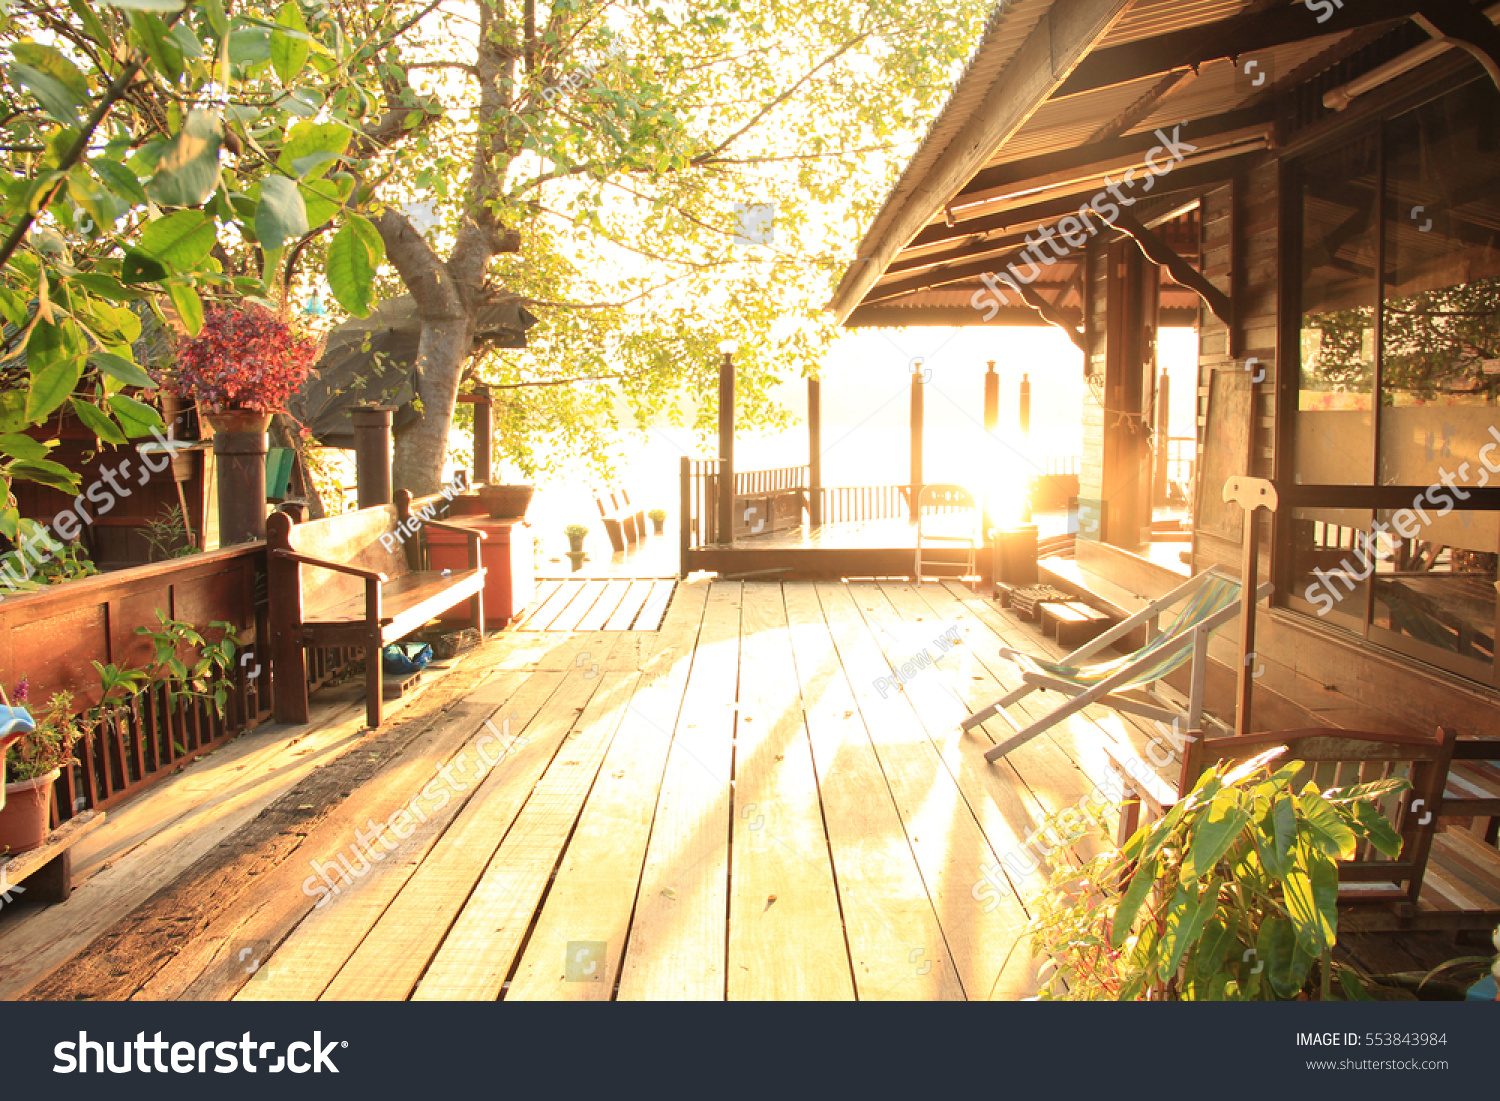 old wooden house patio thai style stock photo royalty free 553843984 shutterstock - Thai Patio